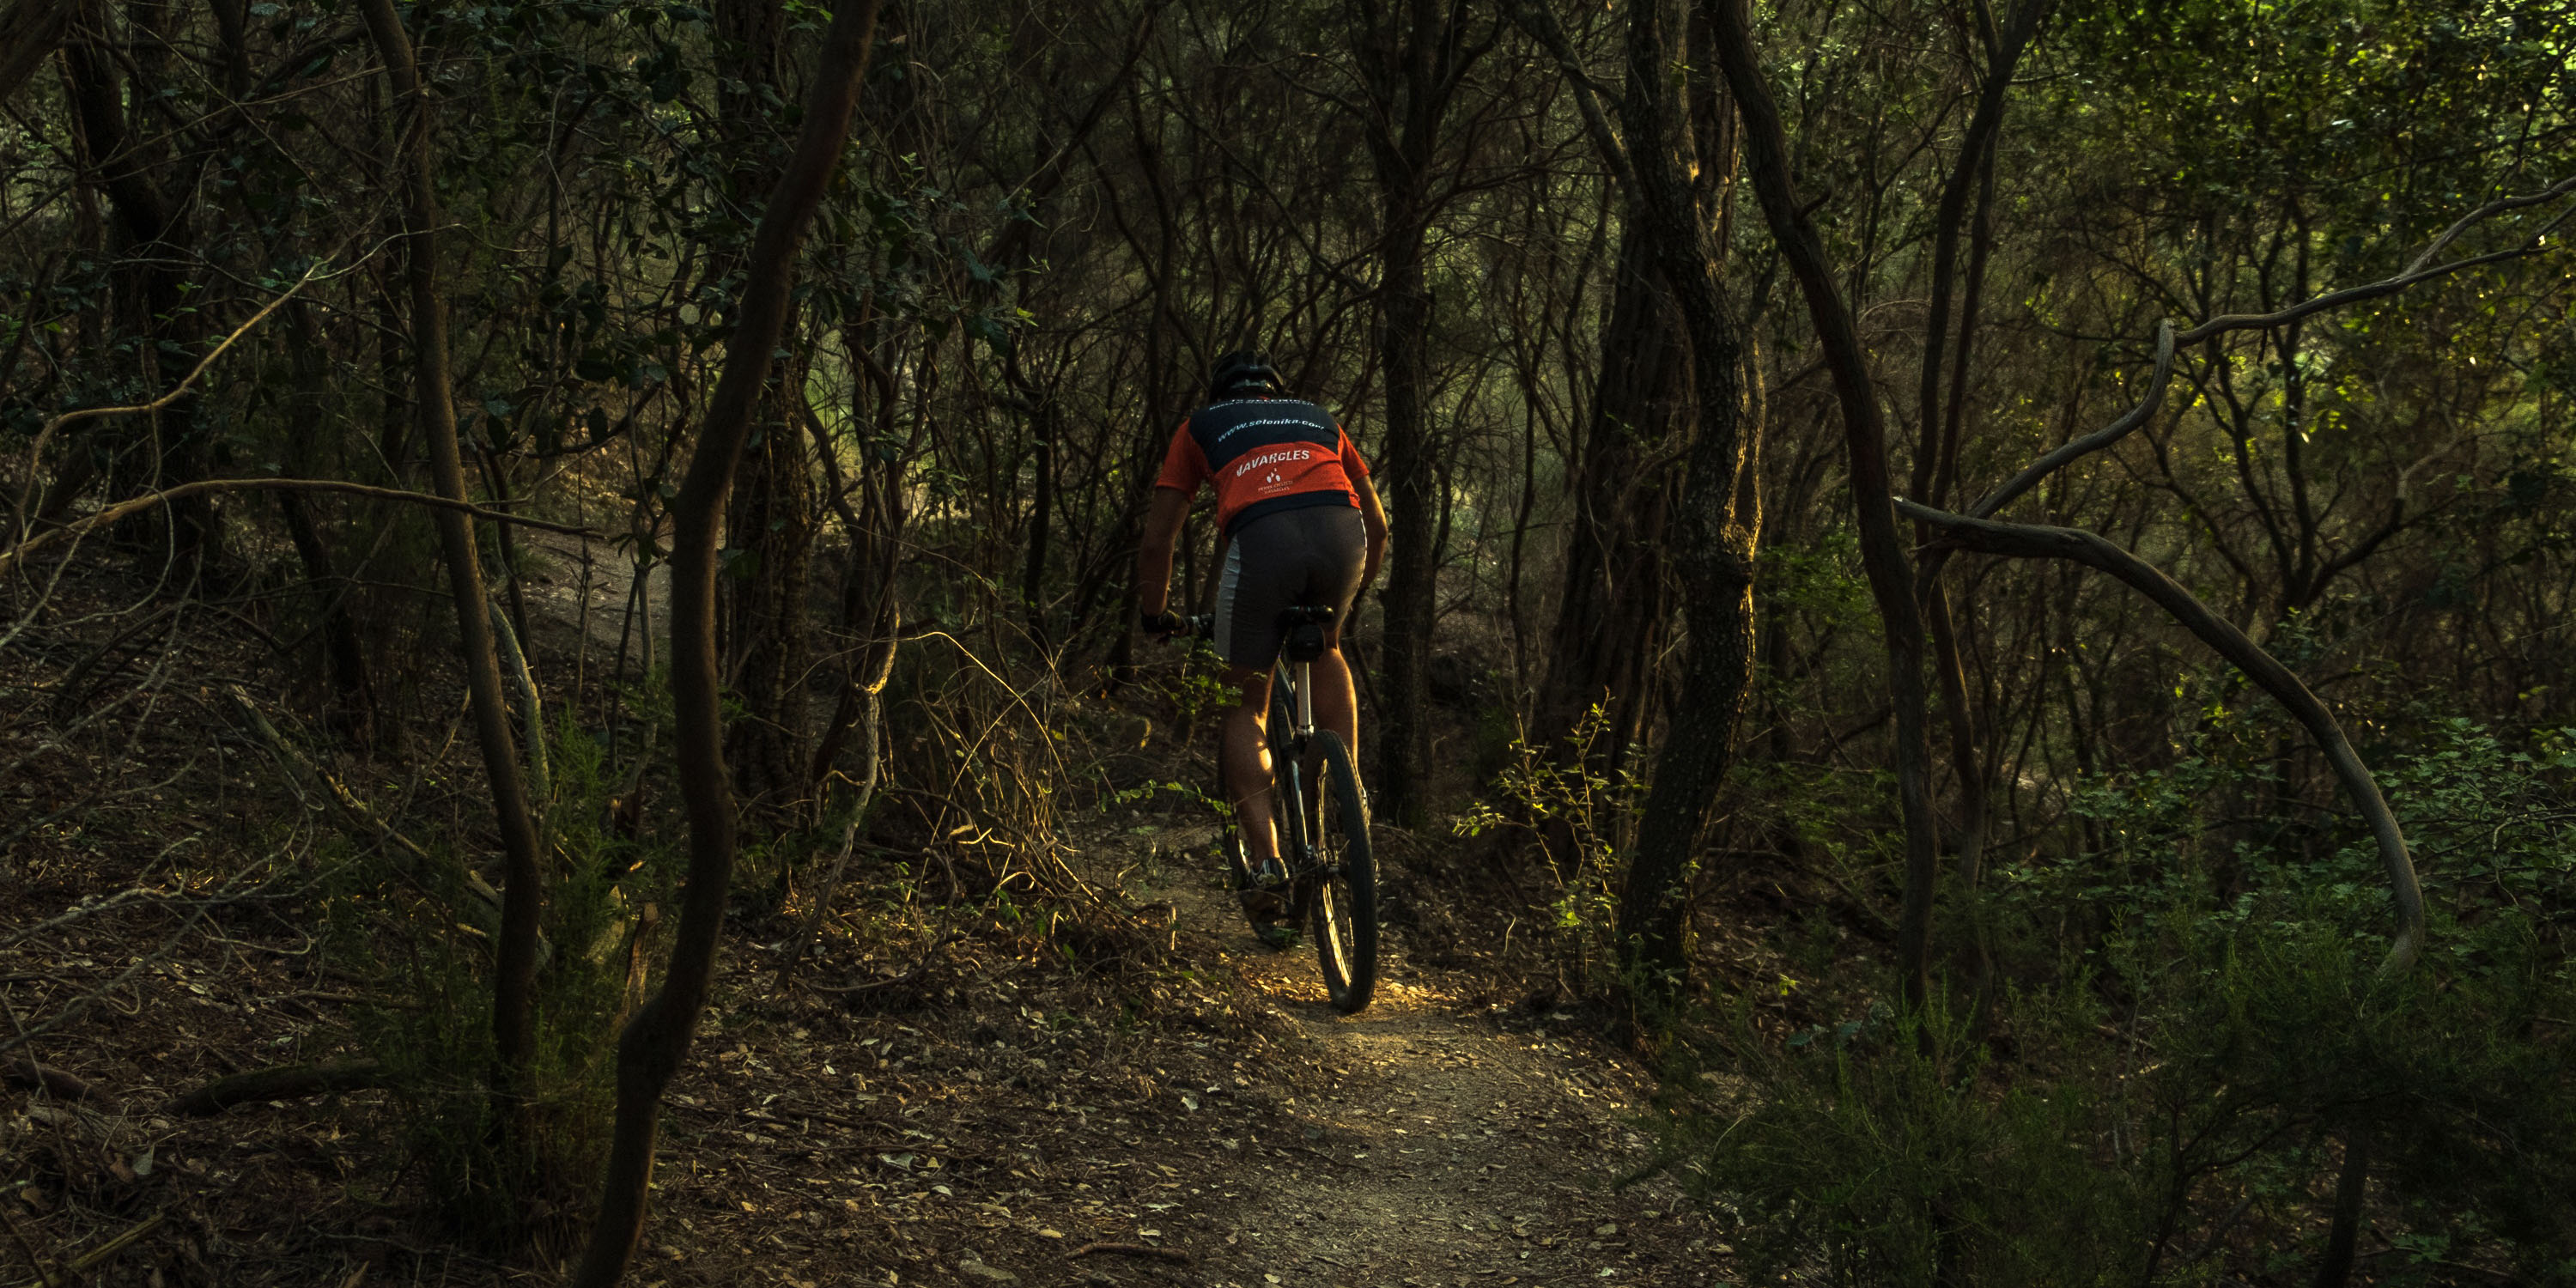 Mountain bike through forests.